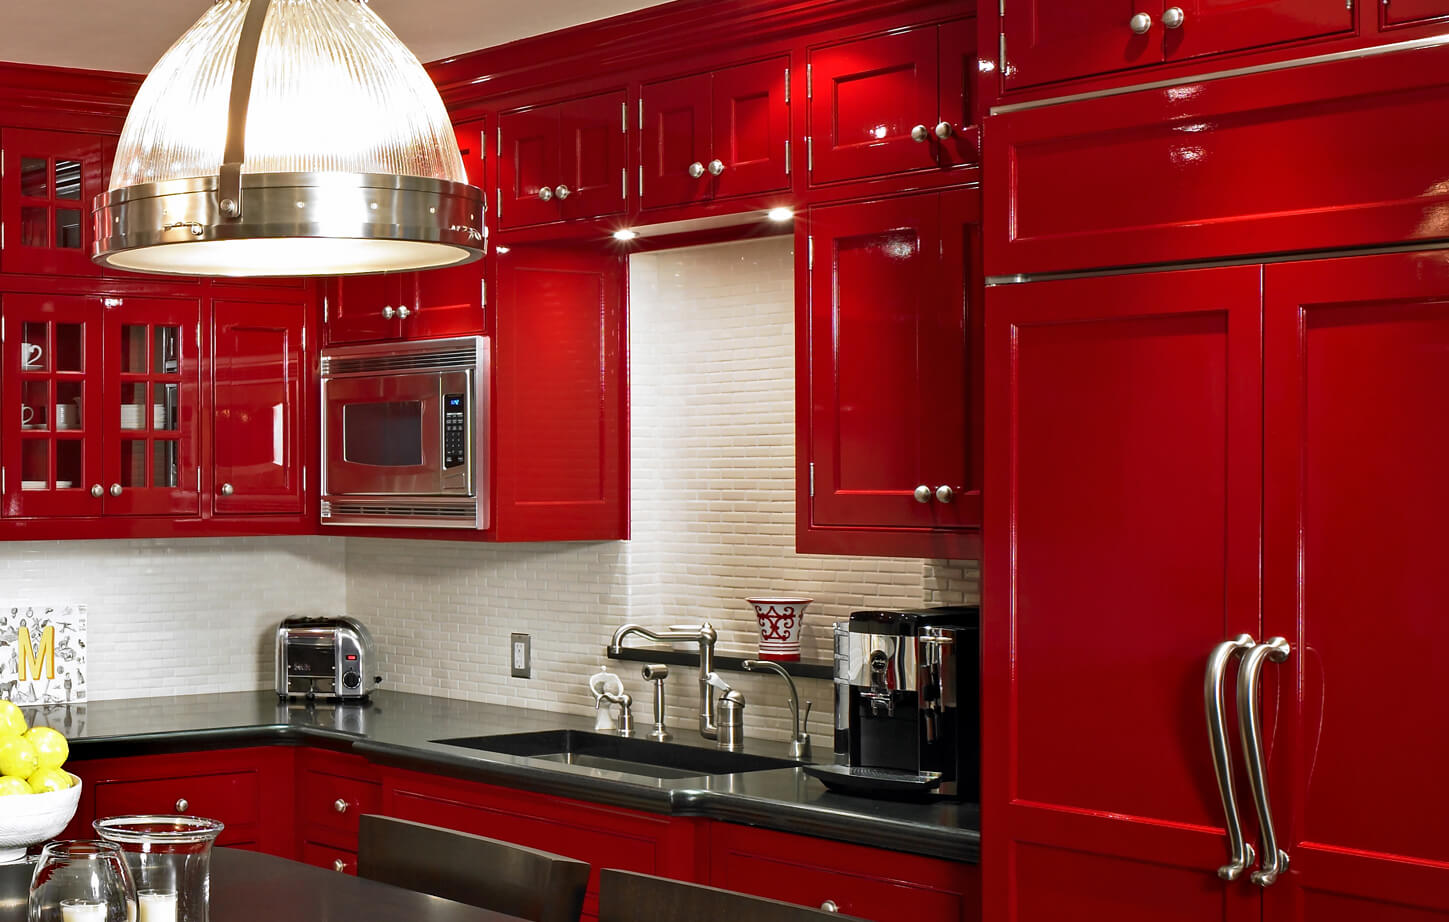 Red kitchen cabinets painted in Schreuder's Brilliant Gloss Rembrandt Red with a lacquer-like finish.